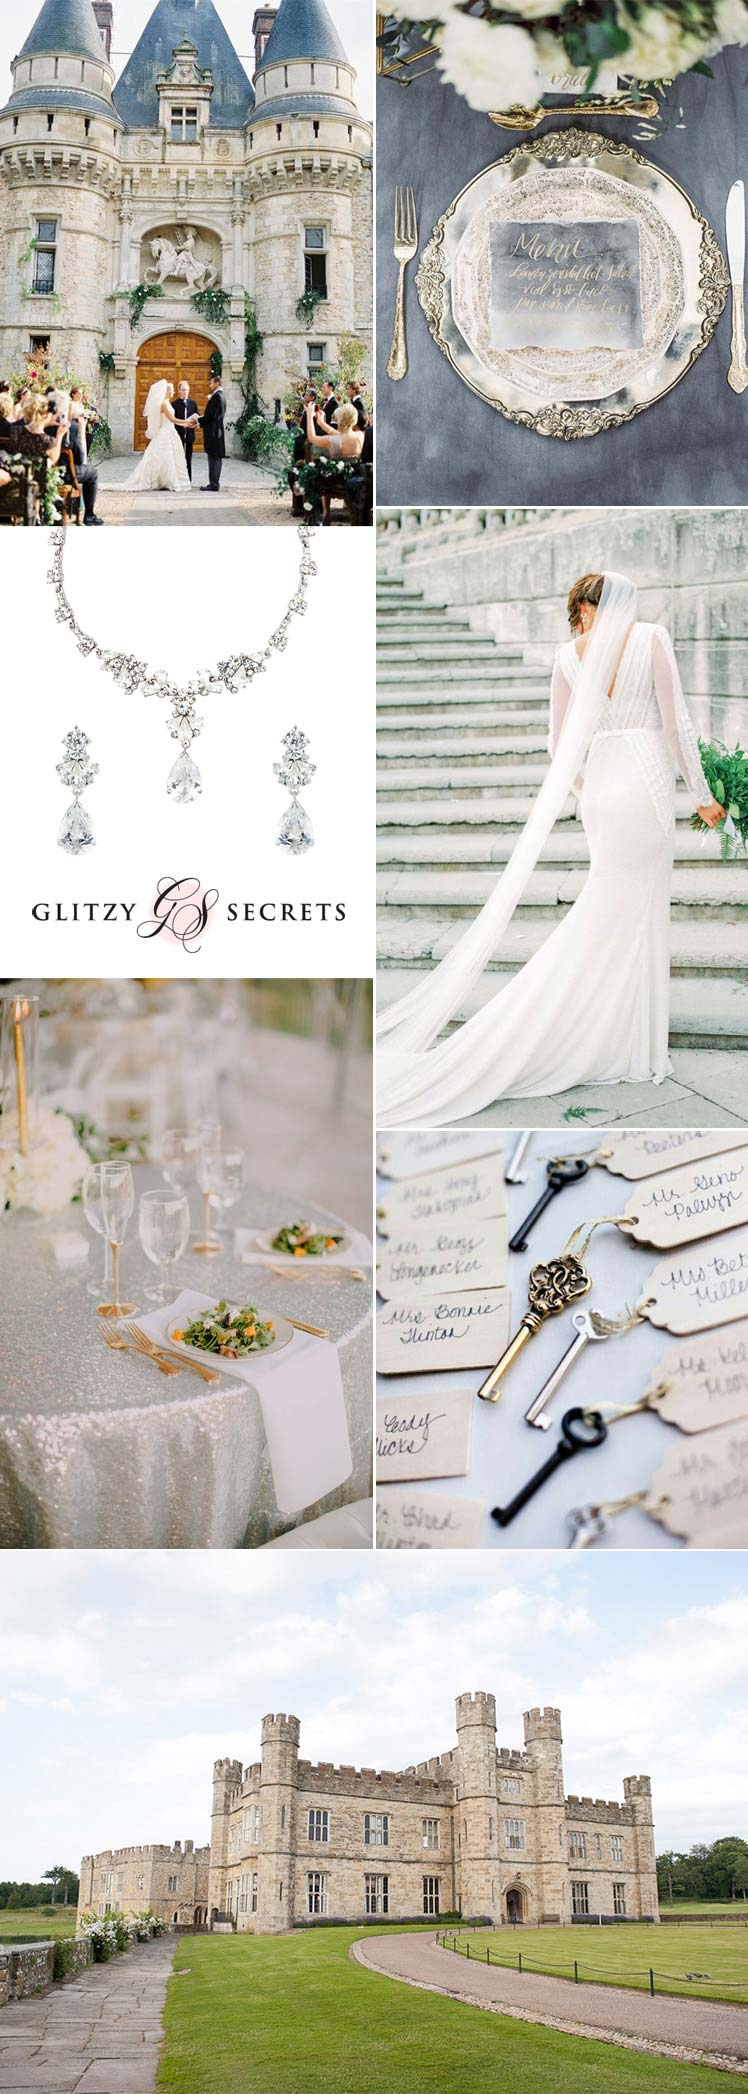 sensational castle wedding inspiration